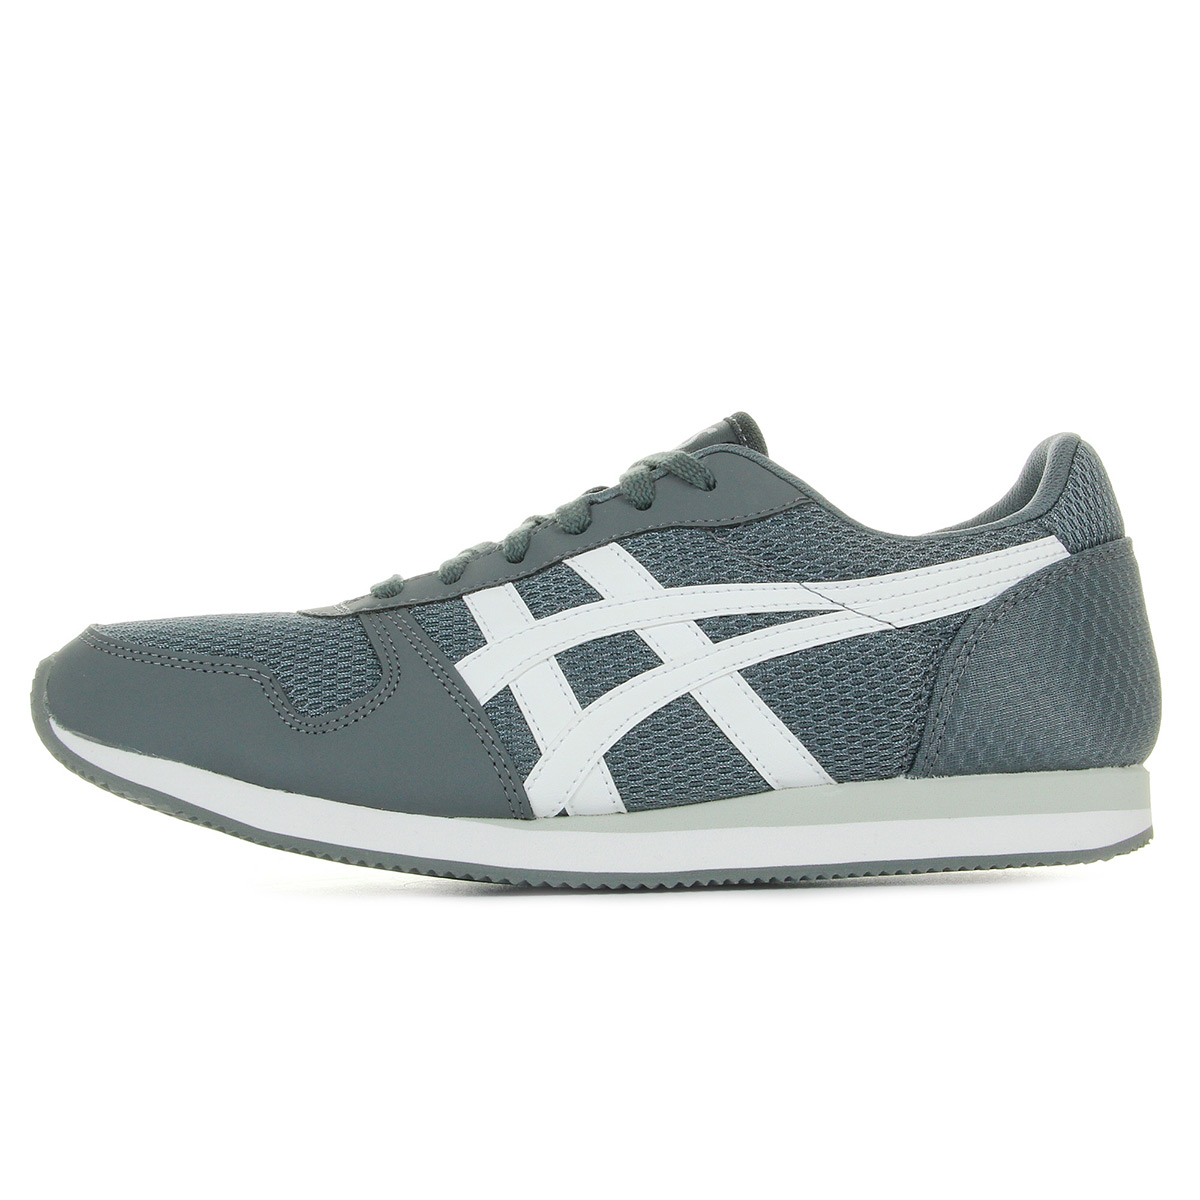 Asics Curreo II Carbon/White HN7A09701, Baskets mode homme